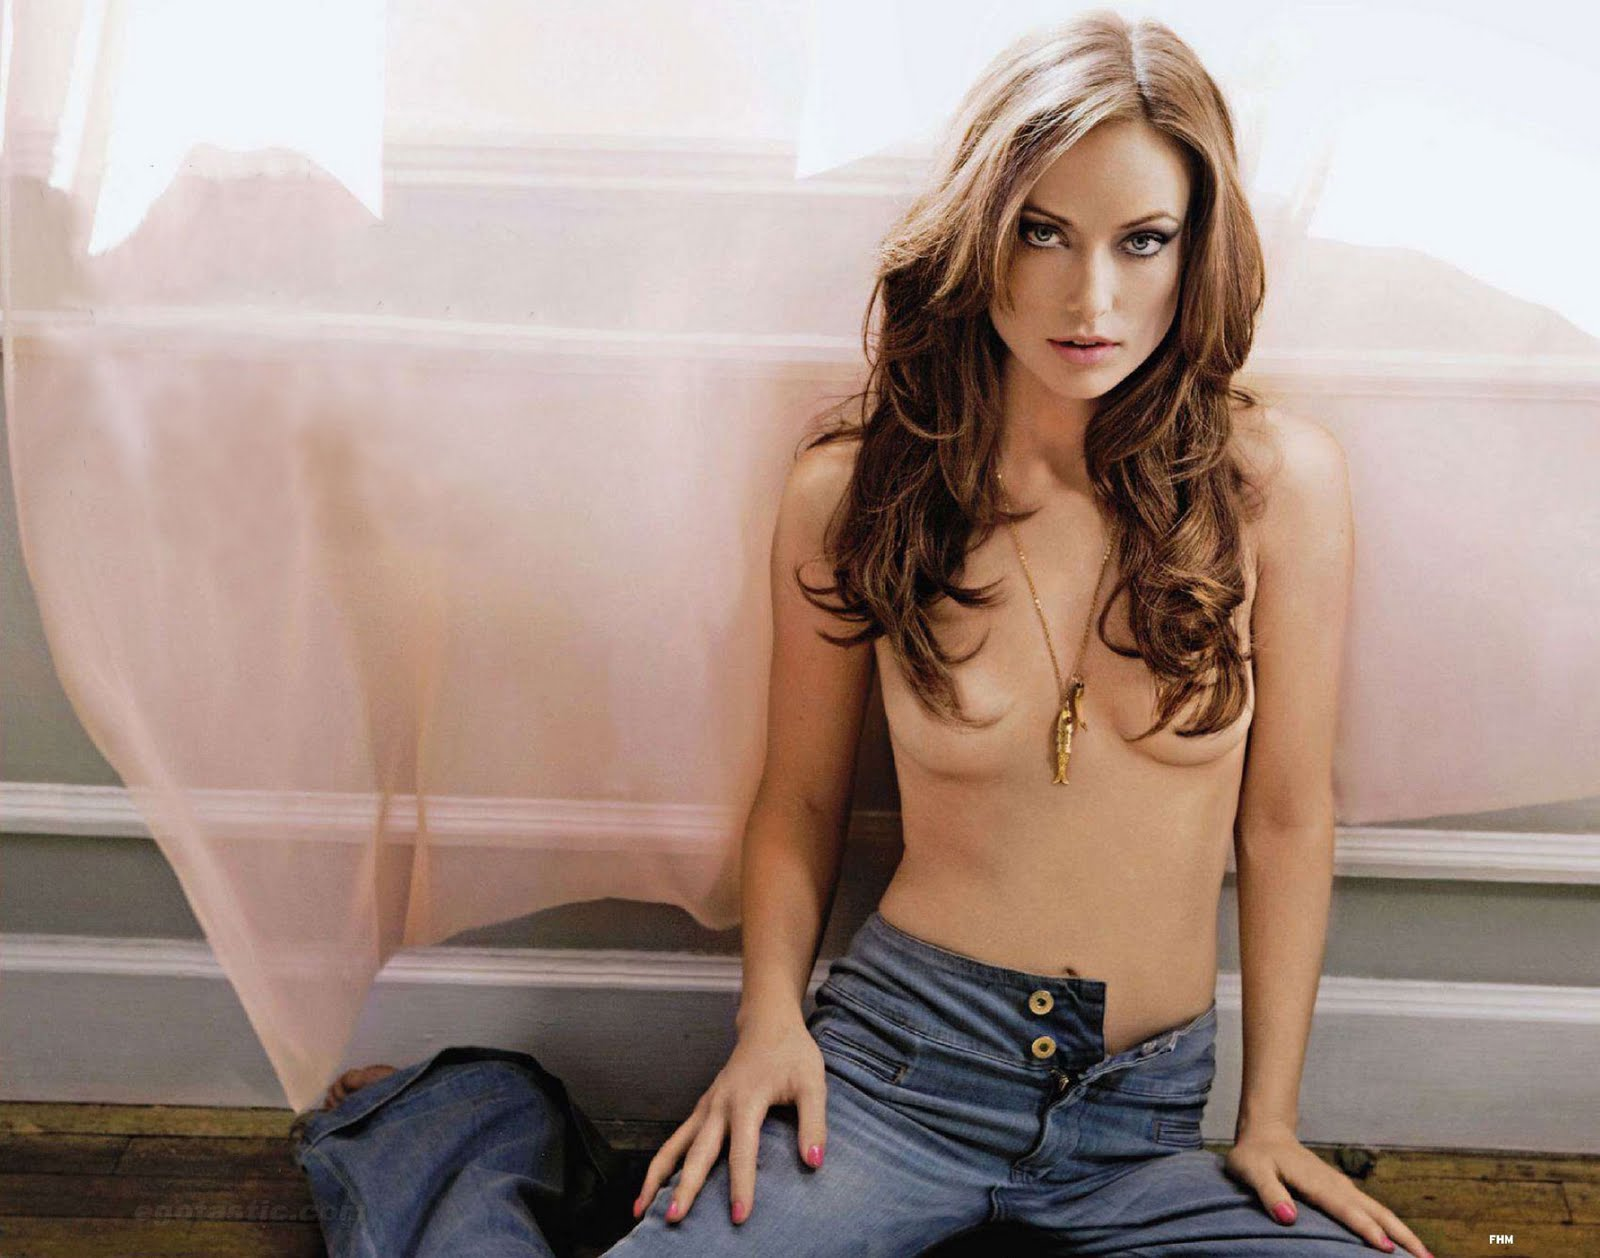 Top model bugil: Olivia Wilde .... HOT Nude Bikini